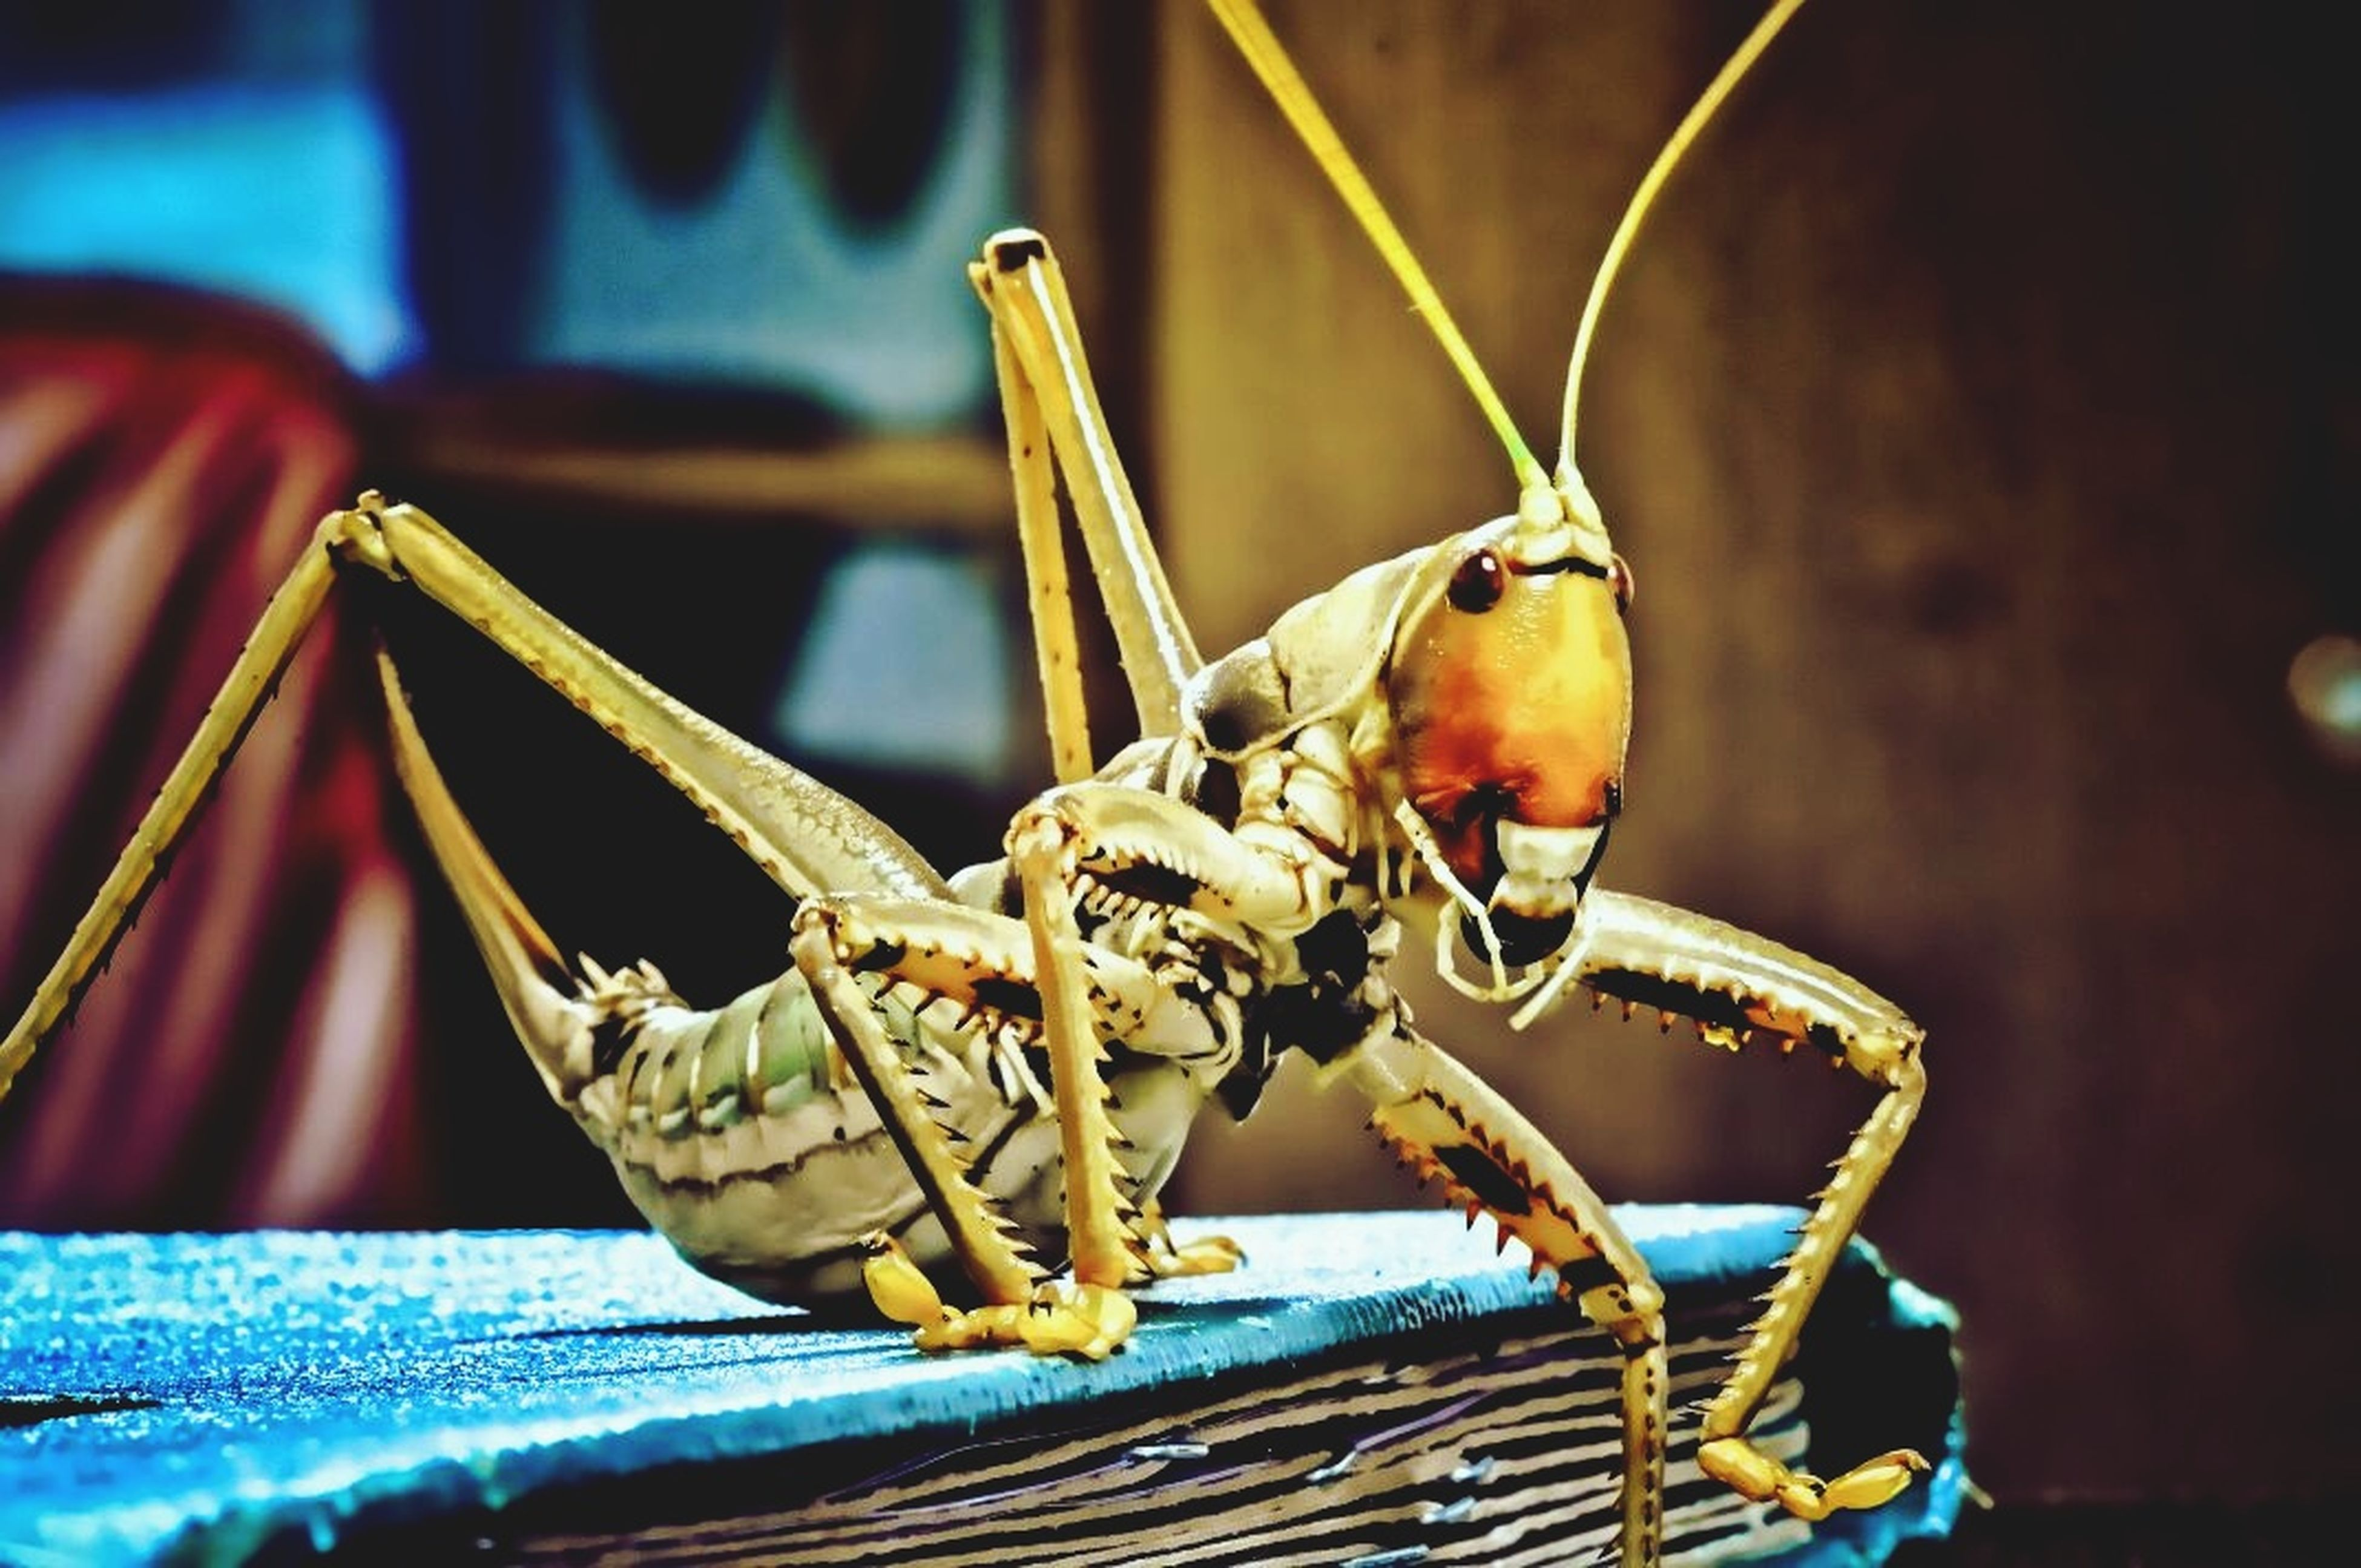 insect, animal themes, one animal, animals in the wild, close-up, no people, focus on foreground, animal wildlife, outdoors, grasshopper, day